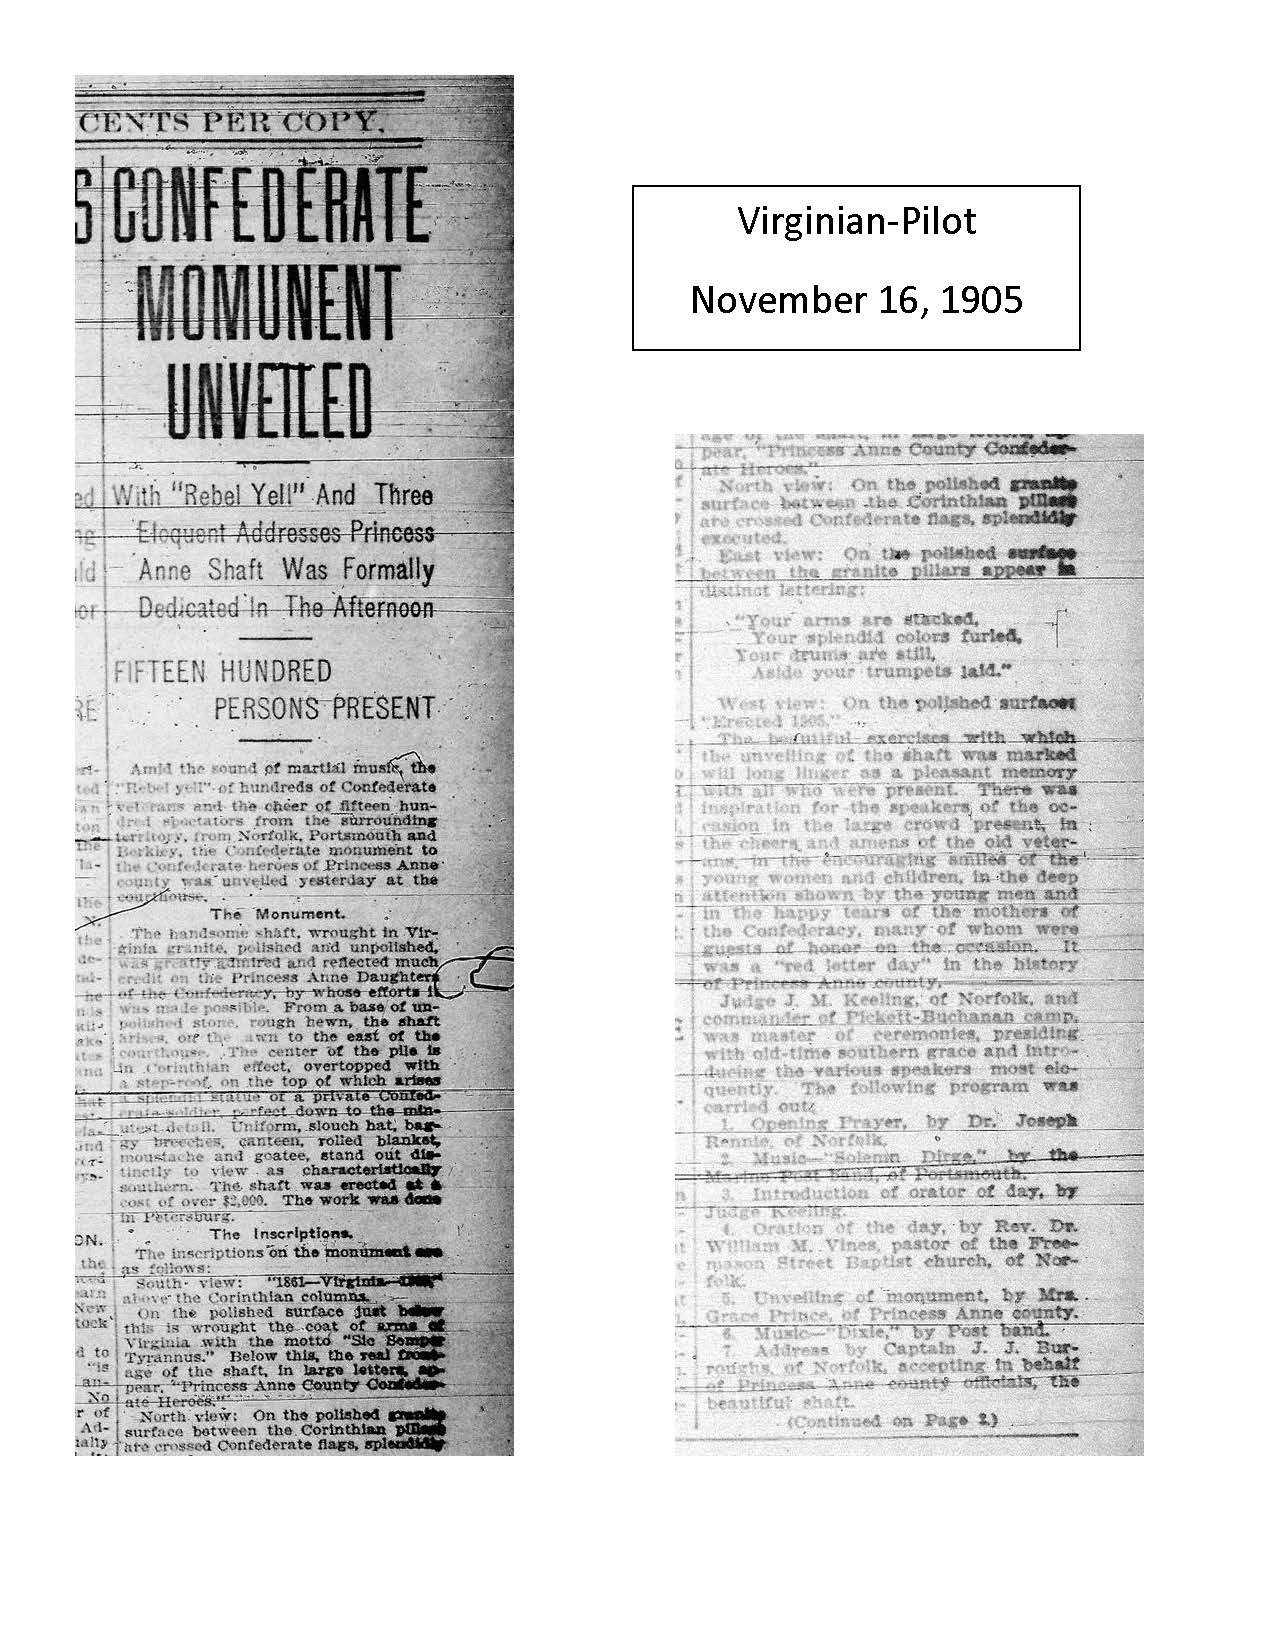 Virginian-Pilot November 16, 1905 article on the dedication of the Princess Anne County Confederate Monument (page 1)